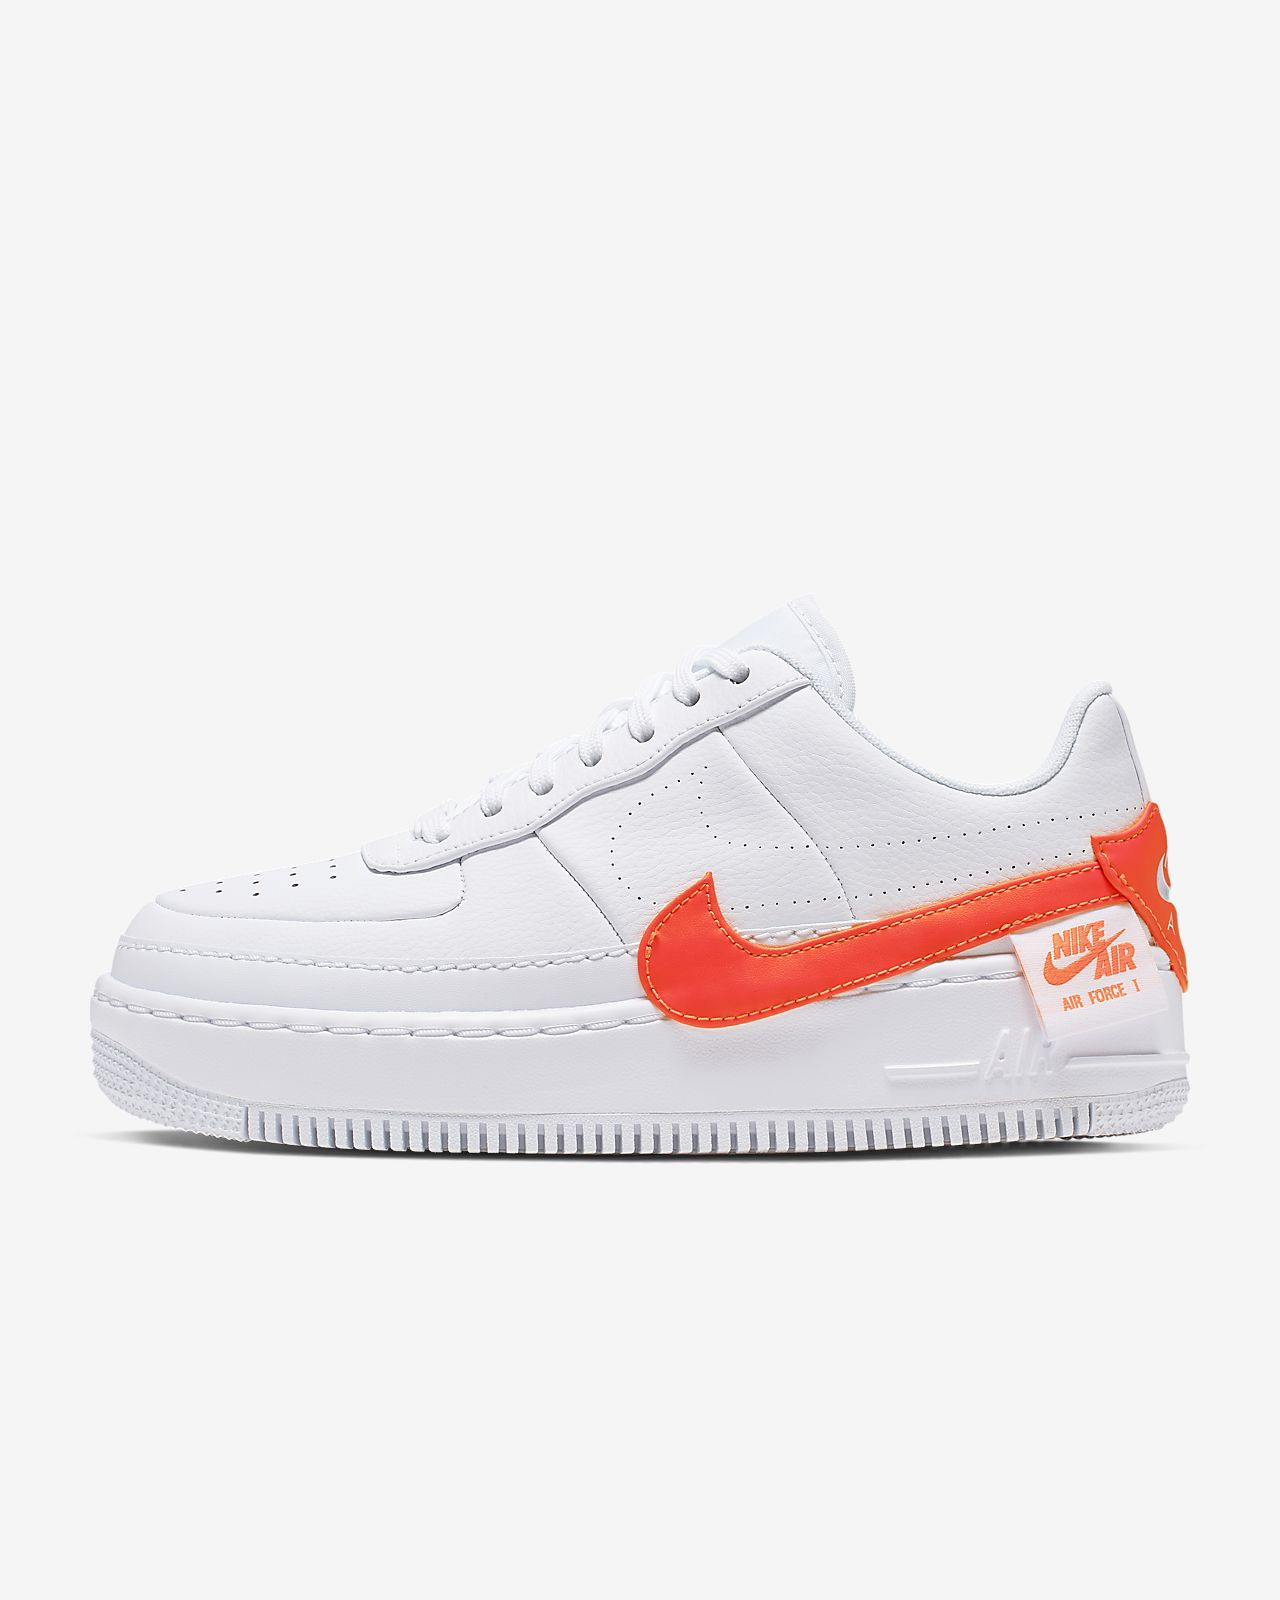 Chaussure Nike Air Force 1 Jester XX pour Femme